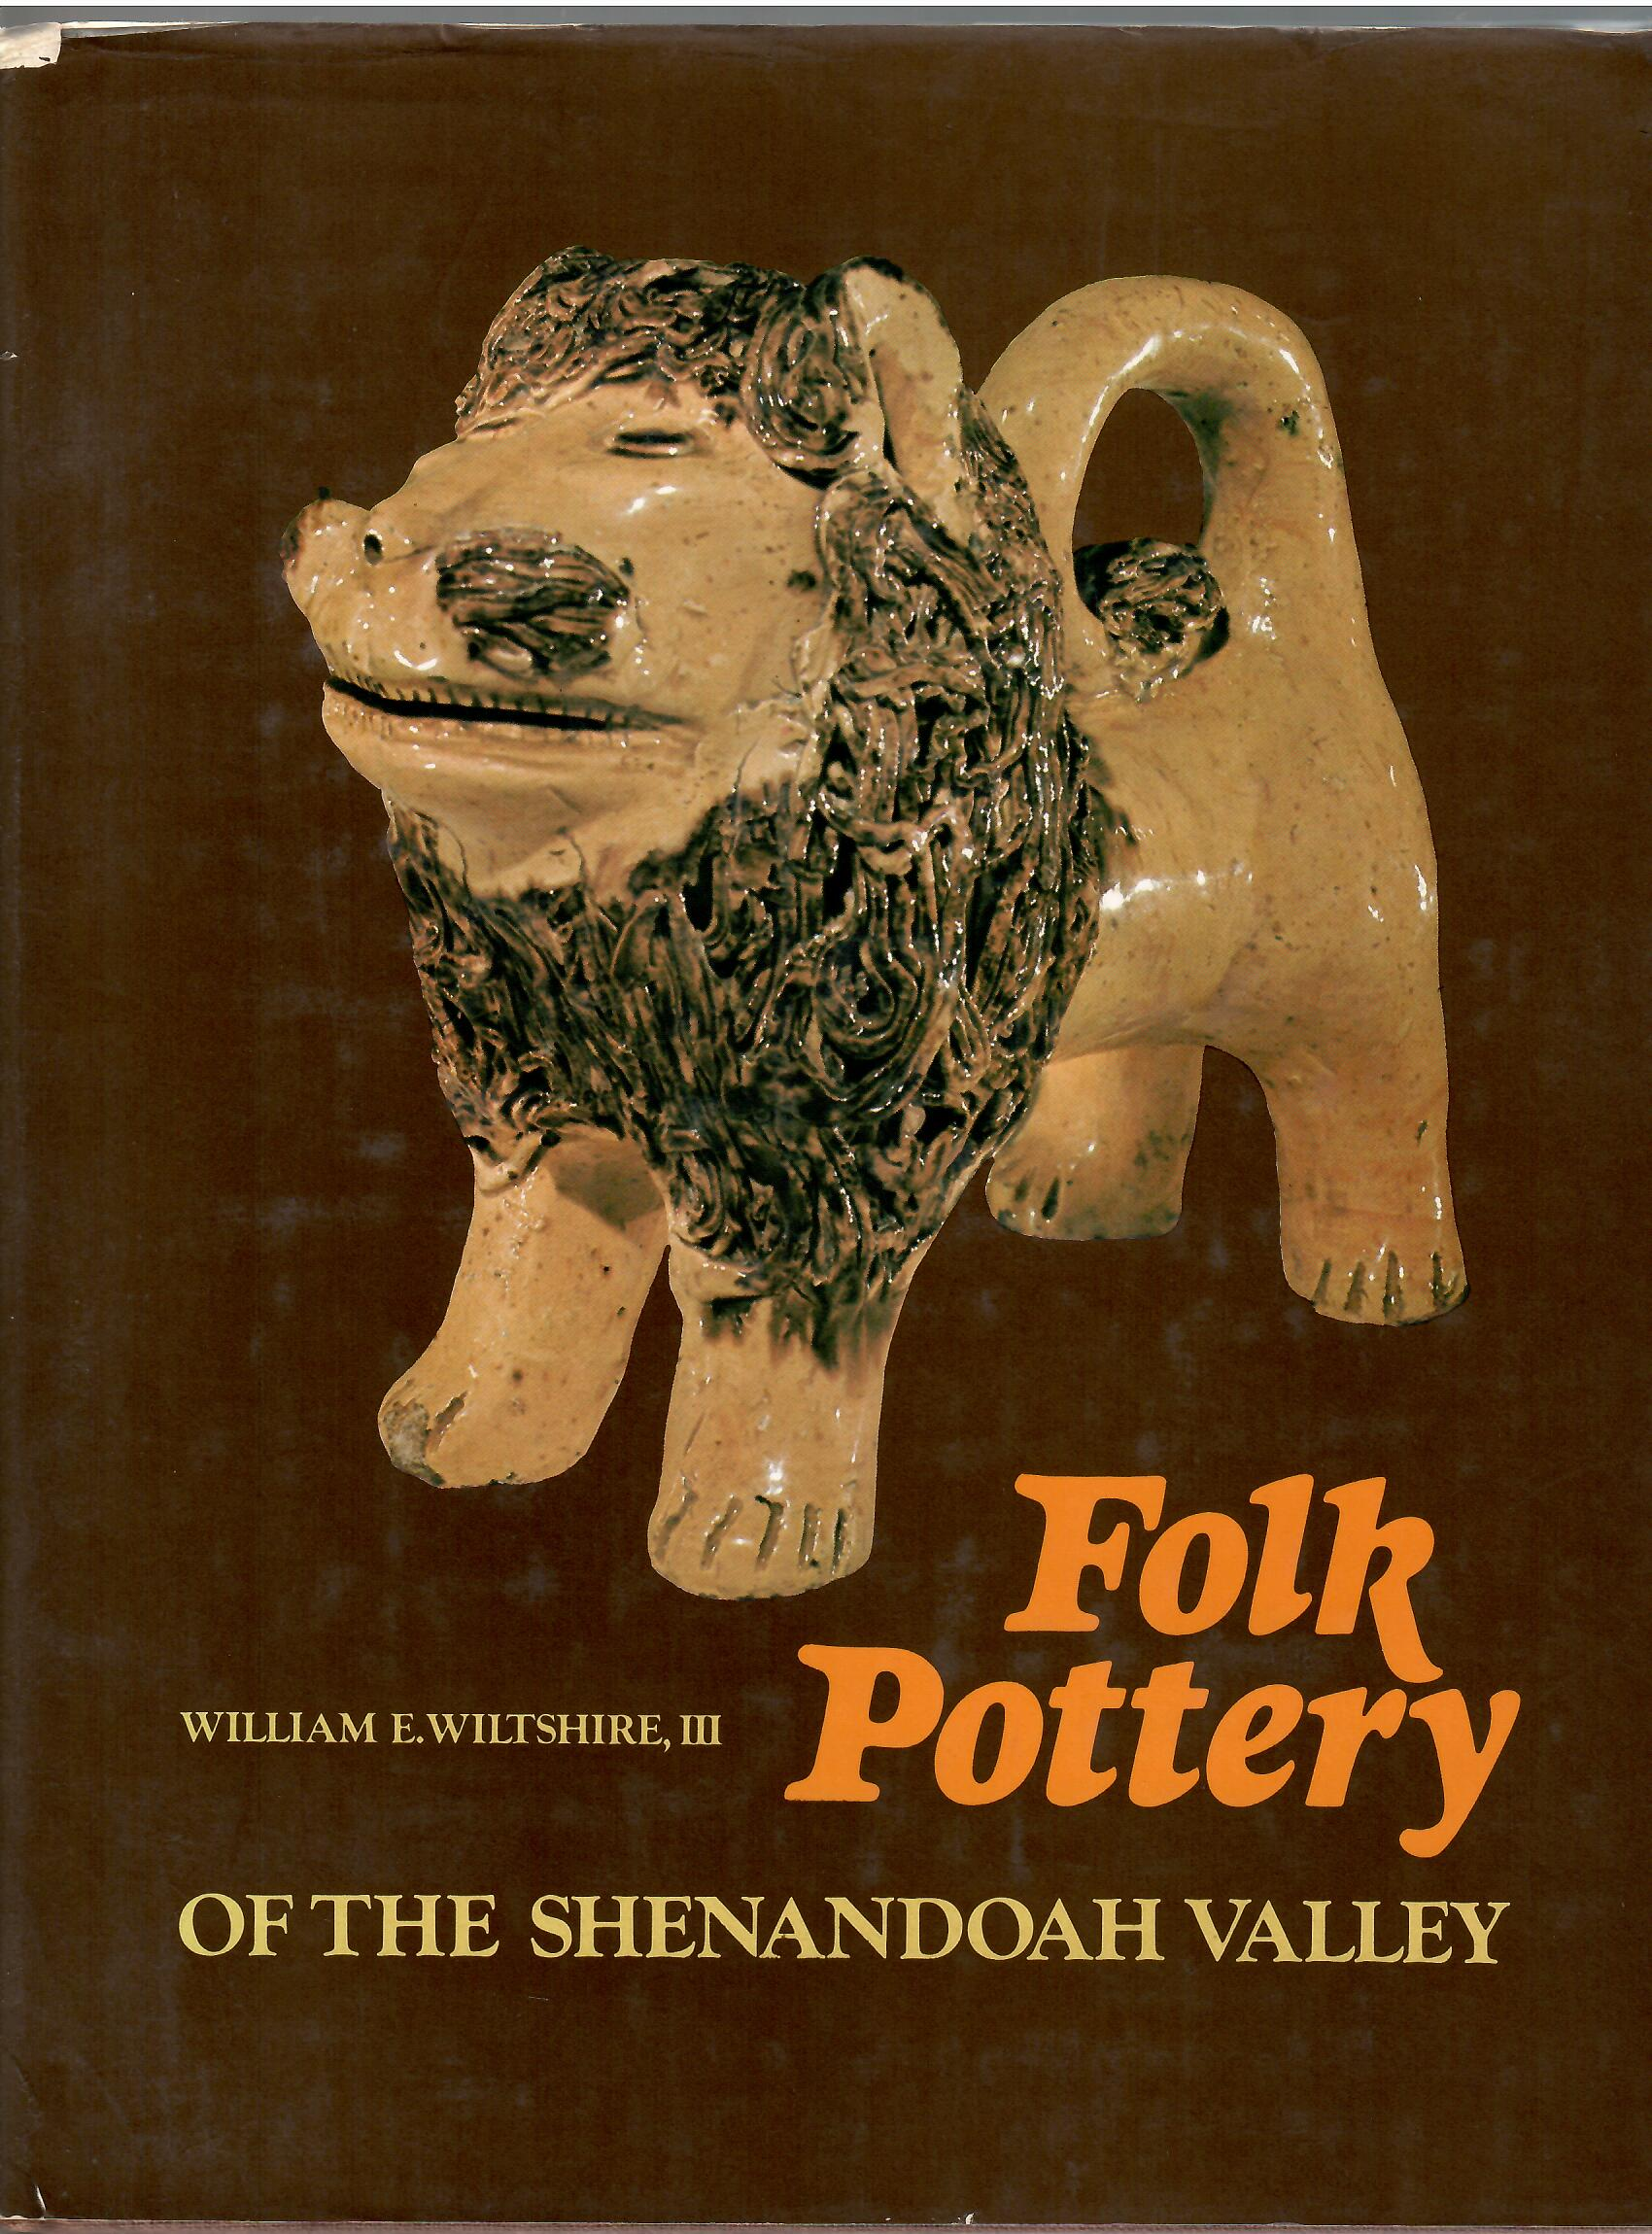 Image for FOLK POTTERY OF THE SHENANDOAH VALLEY